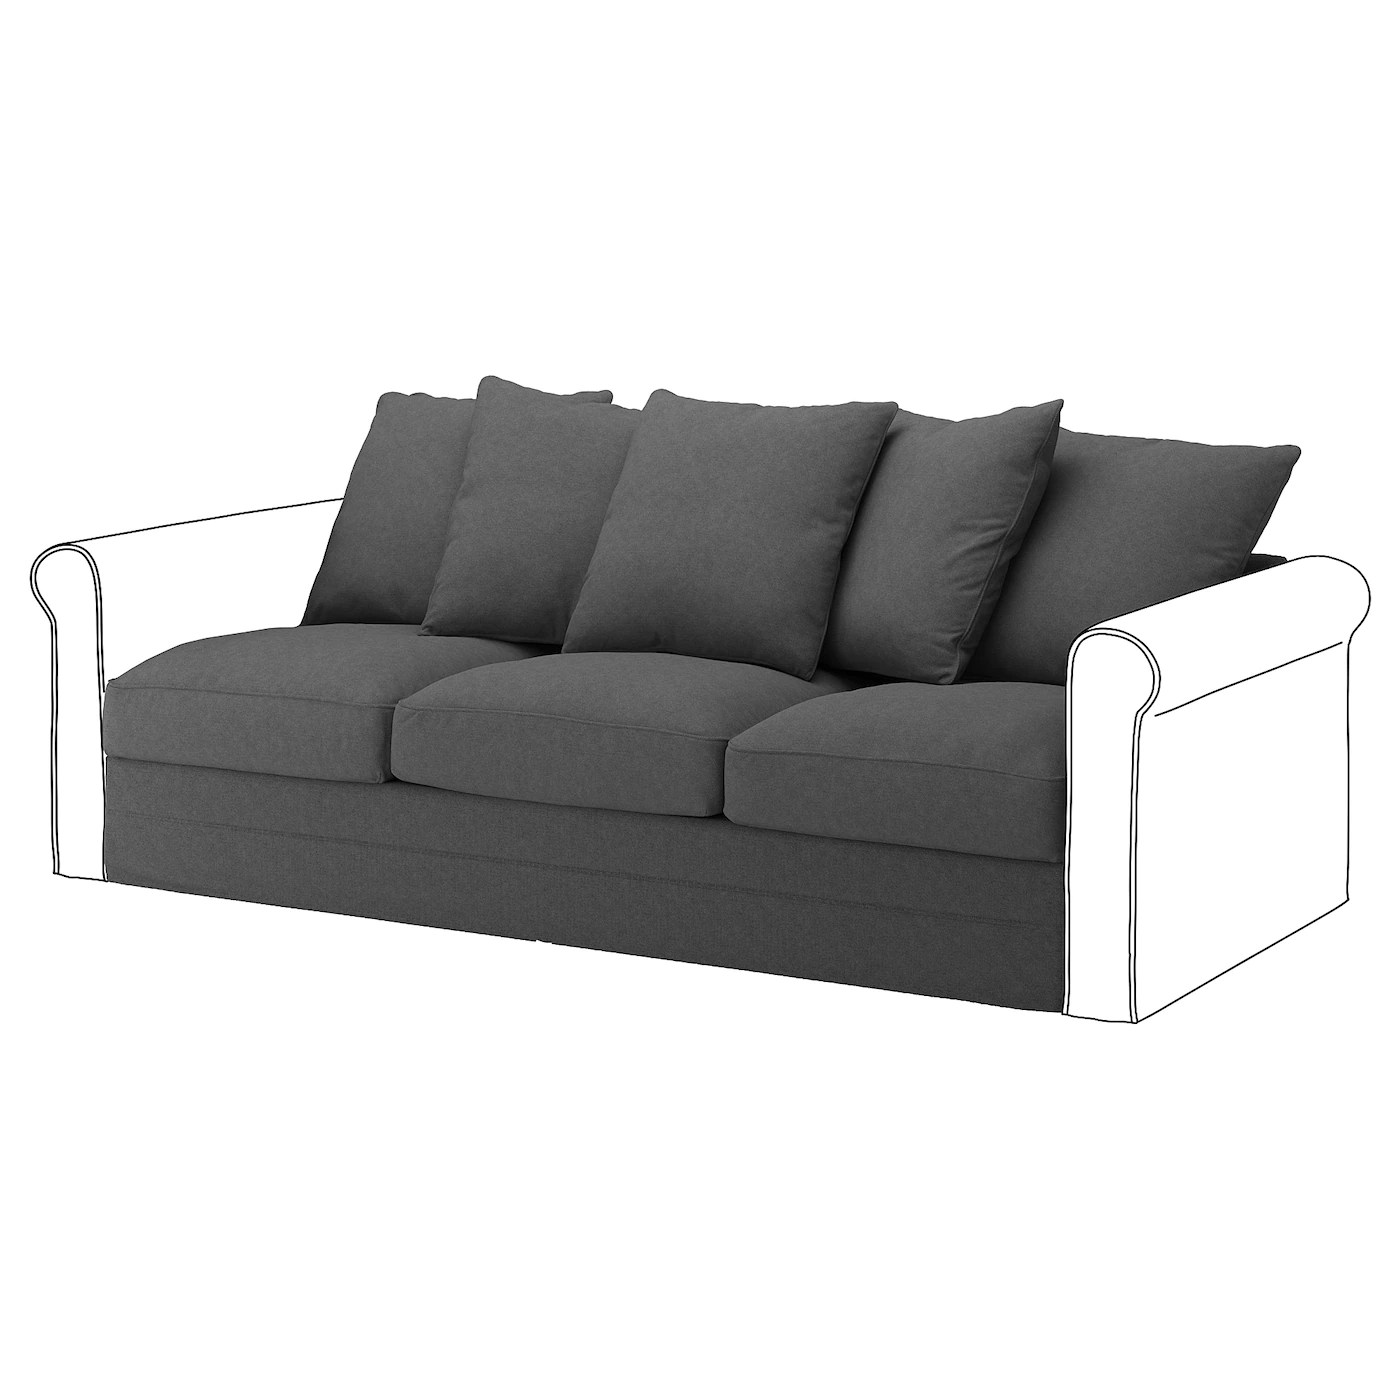 karlstad 3 seat sofa bed cover lazy boy sectional covers ikea gronlid for section